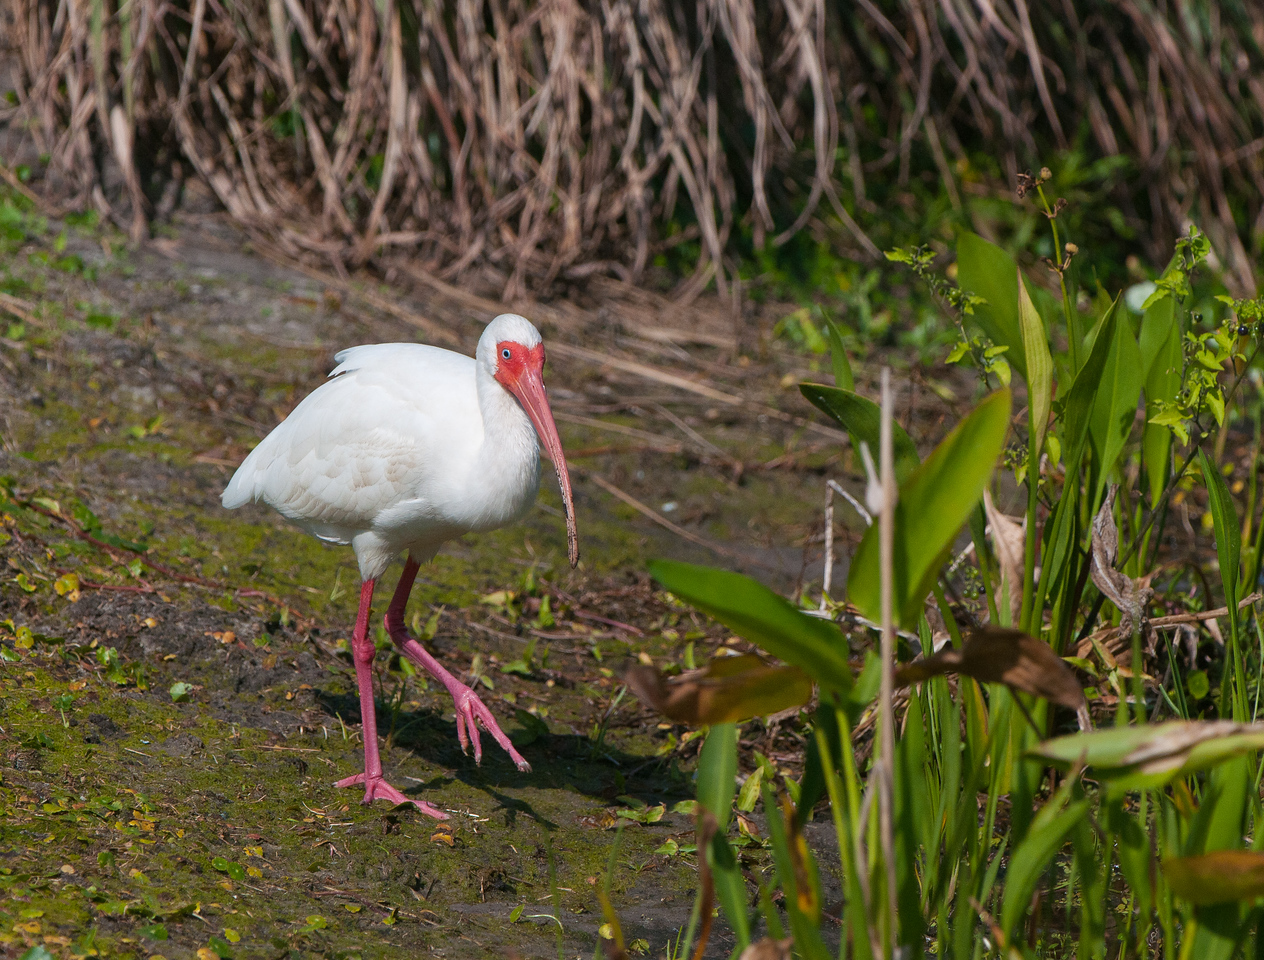 A White Ibis heads to the marsh in search of a meal.